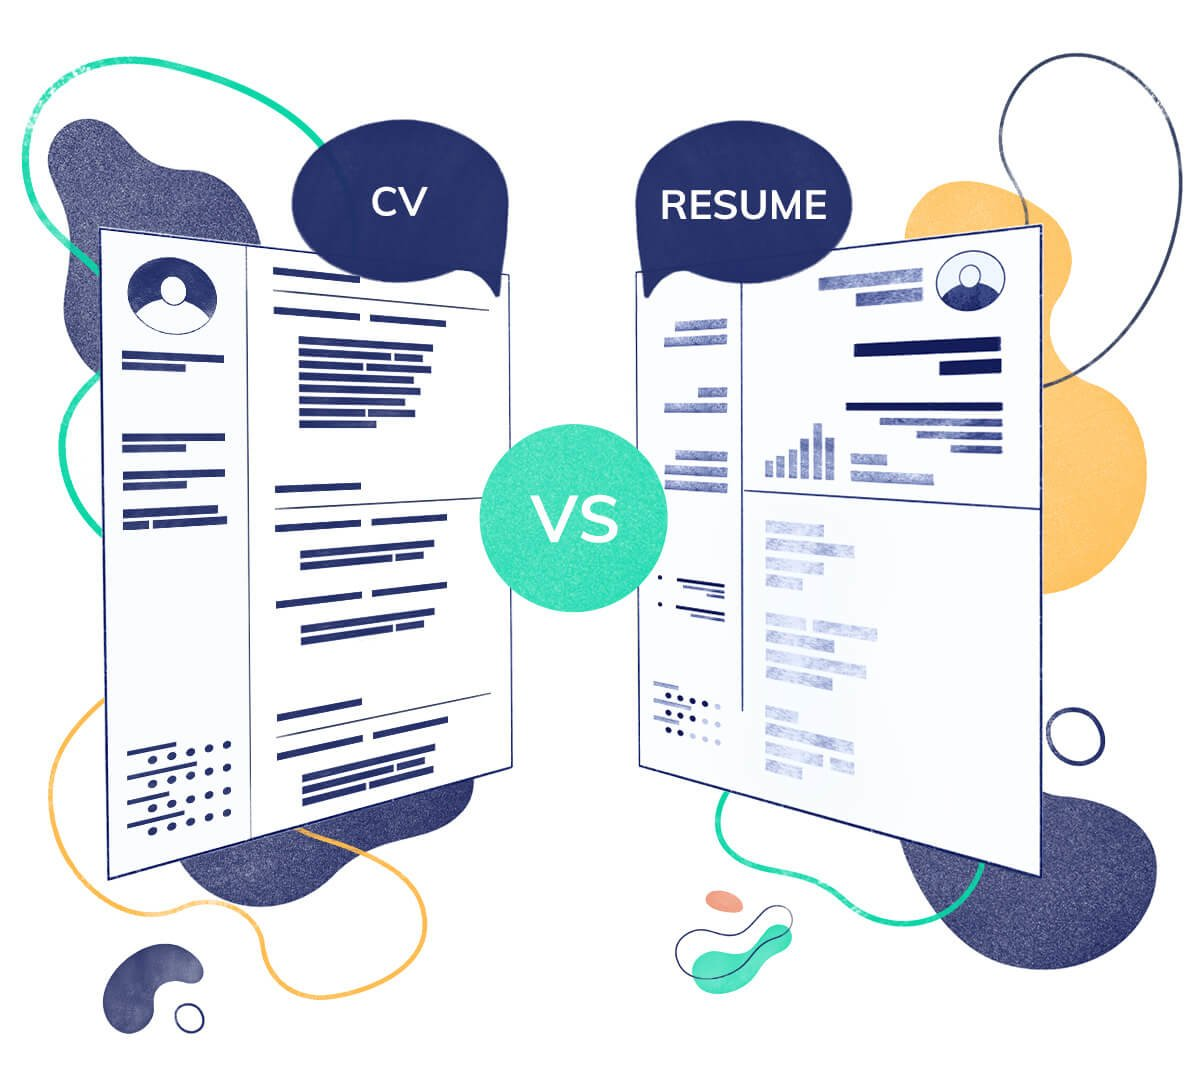 The Difference Between A CV And A Resume